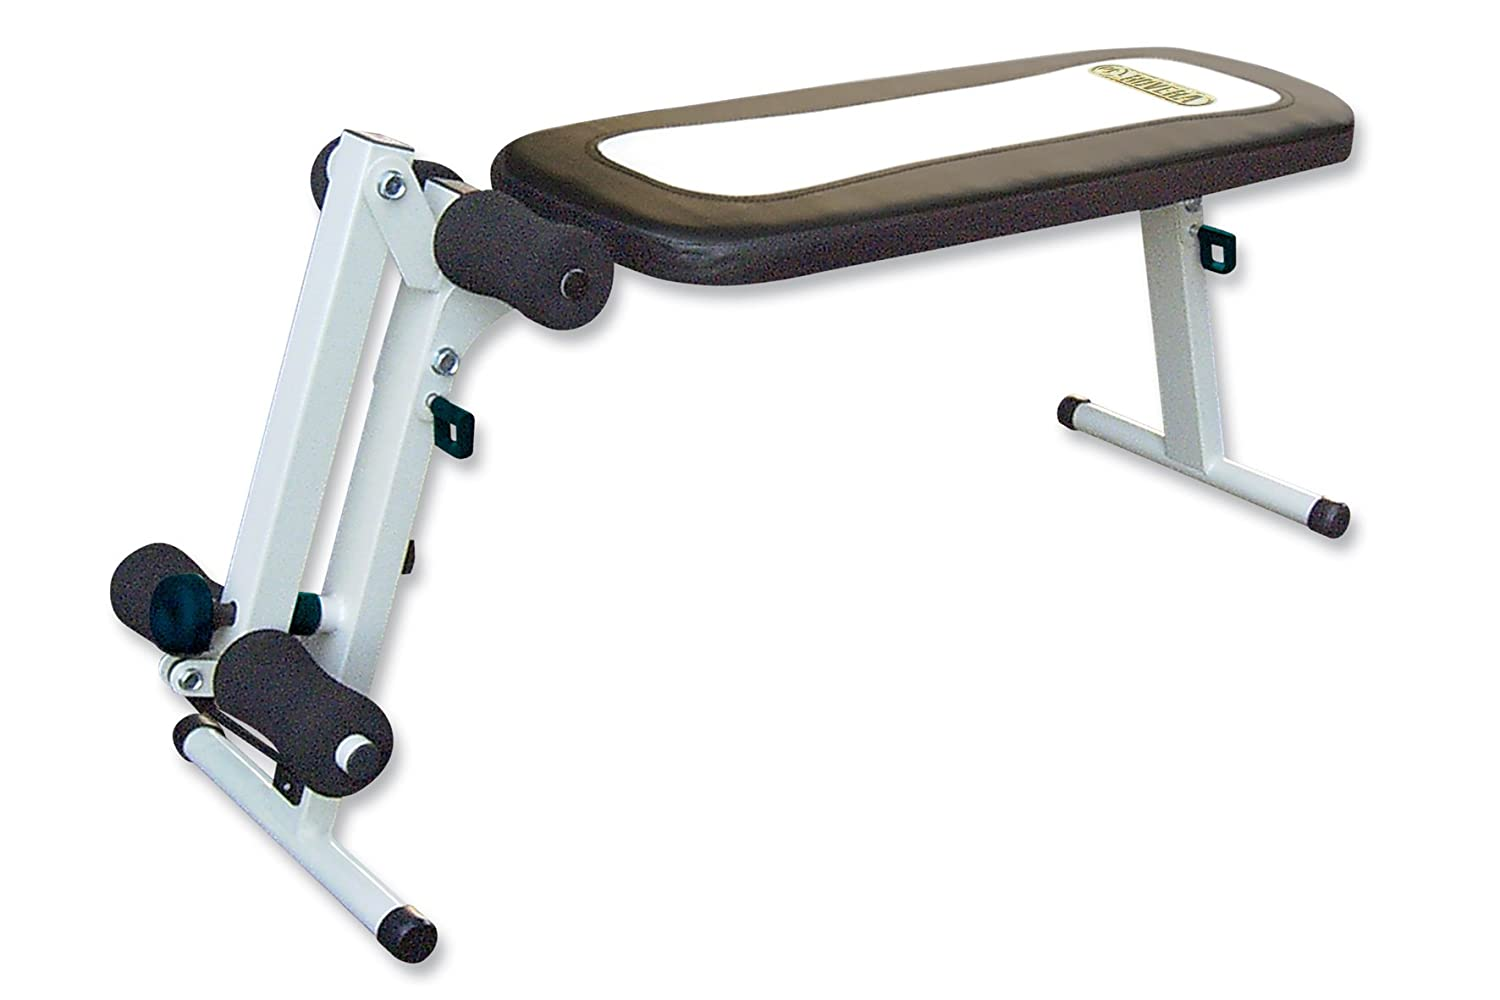 Rovera WEIGHLIFTING DIVERSE TOOLS SPORT & FITNESS AB BAUCHMUSKELBANK LEG-LEG EXTENSION